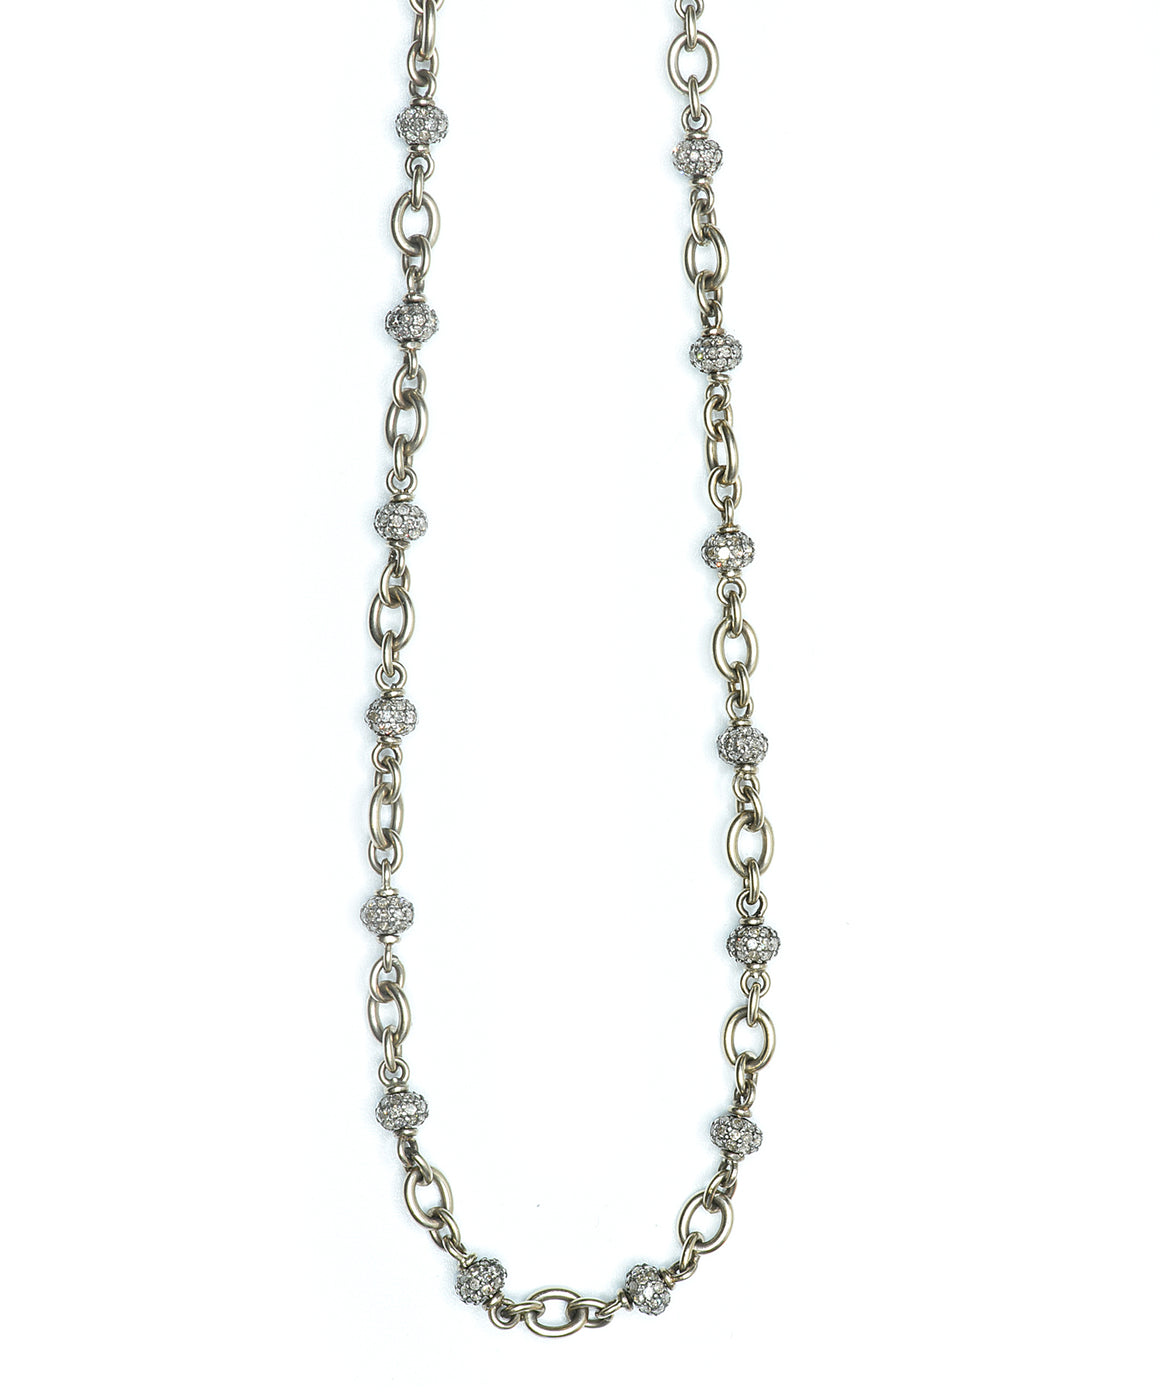 Diamond ball chain in white gold